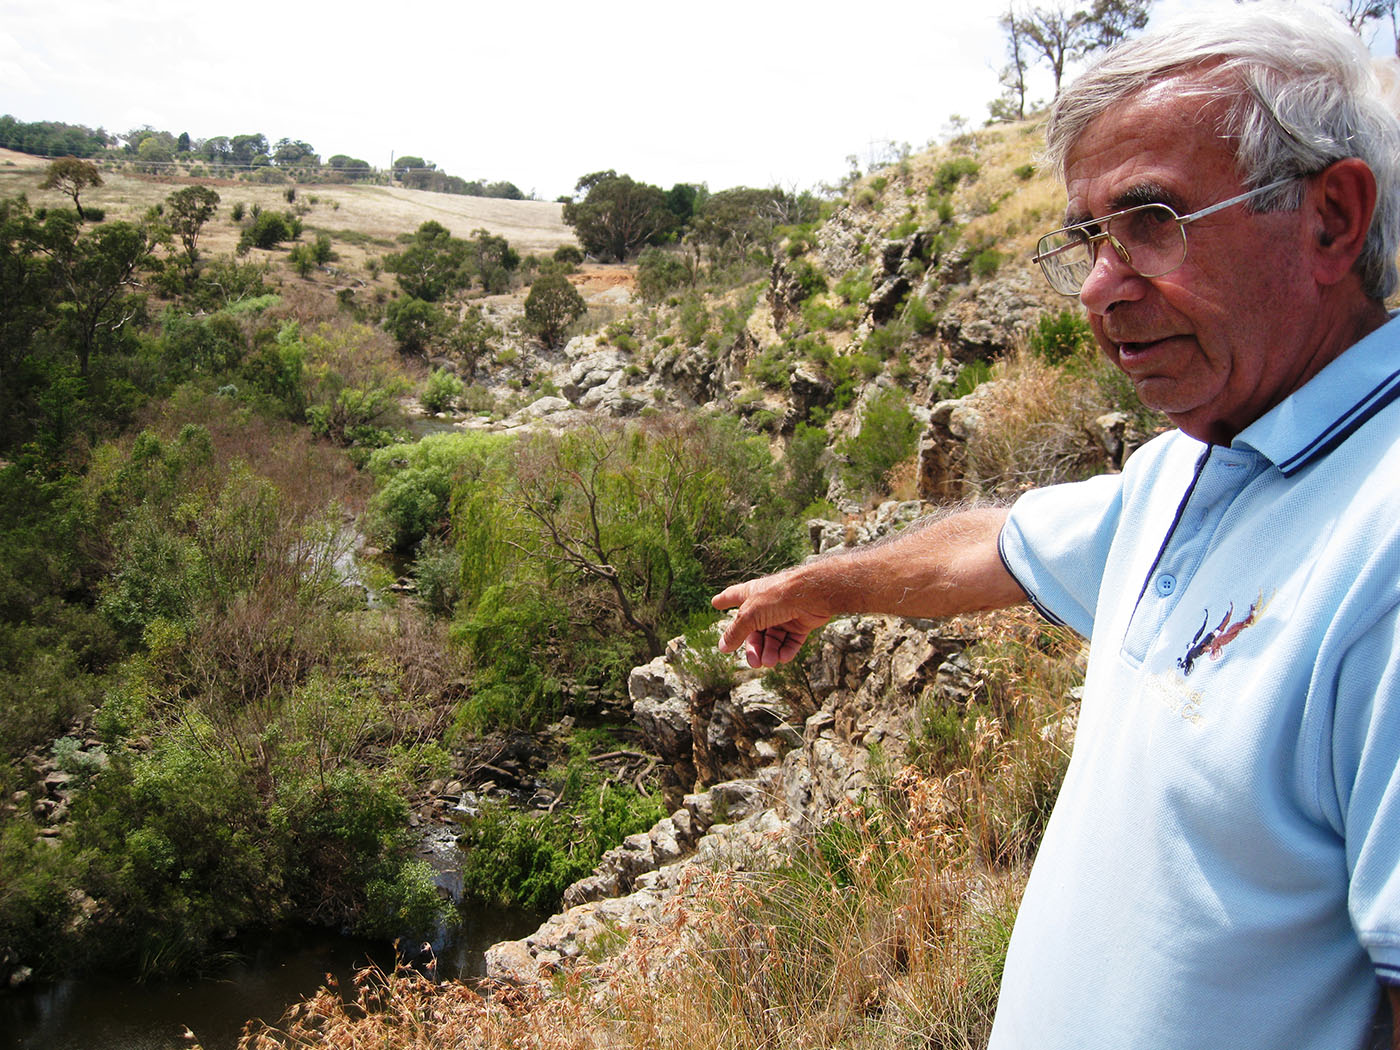 Eric Bell stands on a hillside, pointing to a small river below.